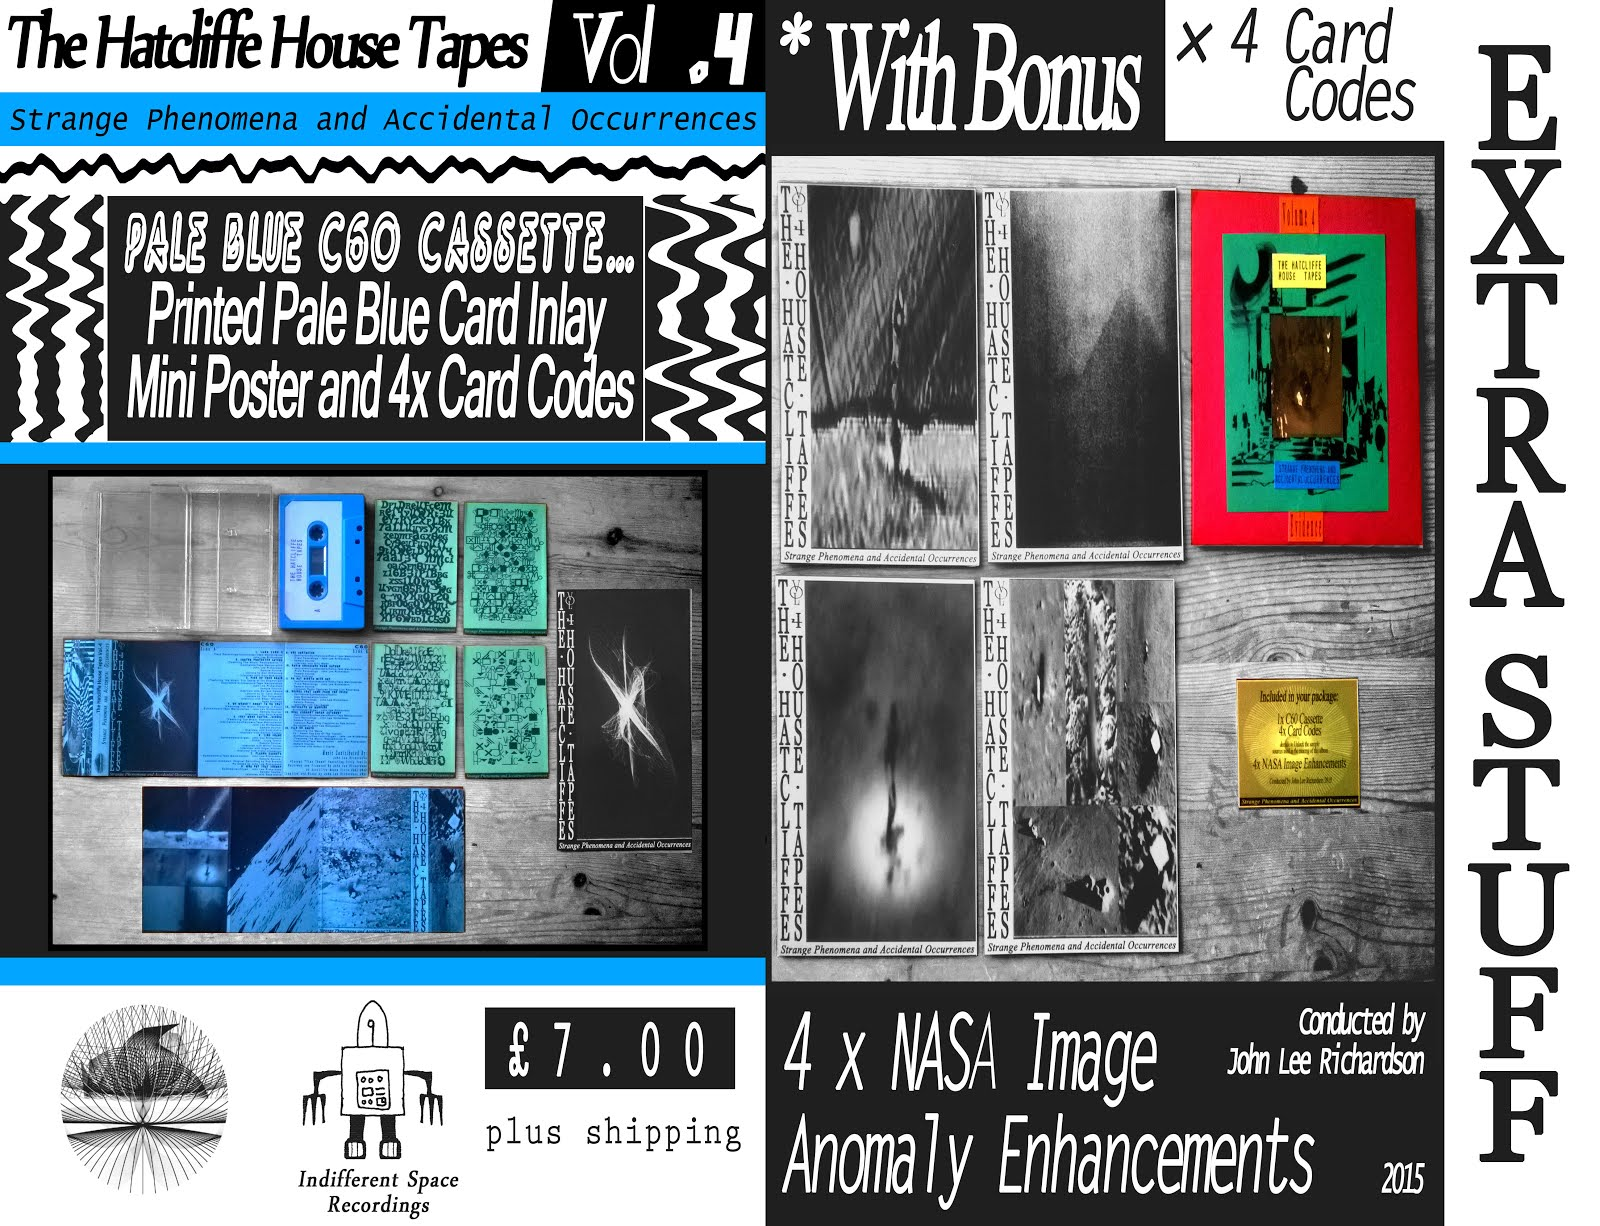 Volume 4 (C60 Pale Blue Cassette + Extra Stuff!)